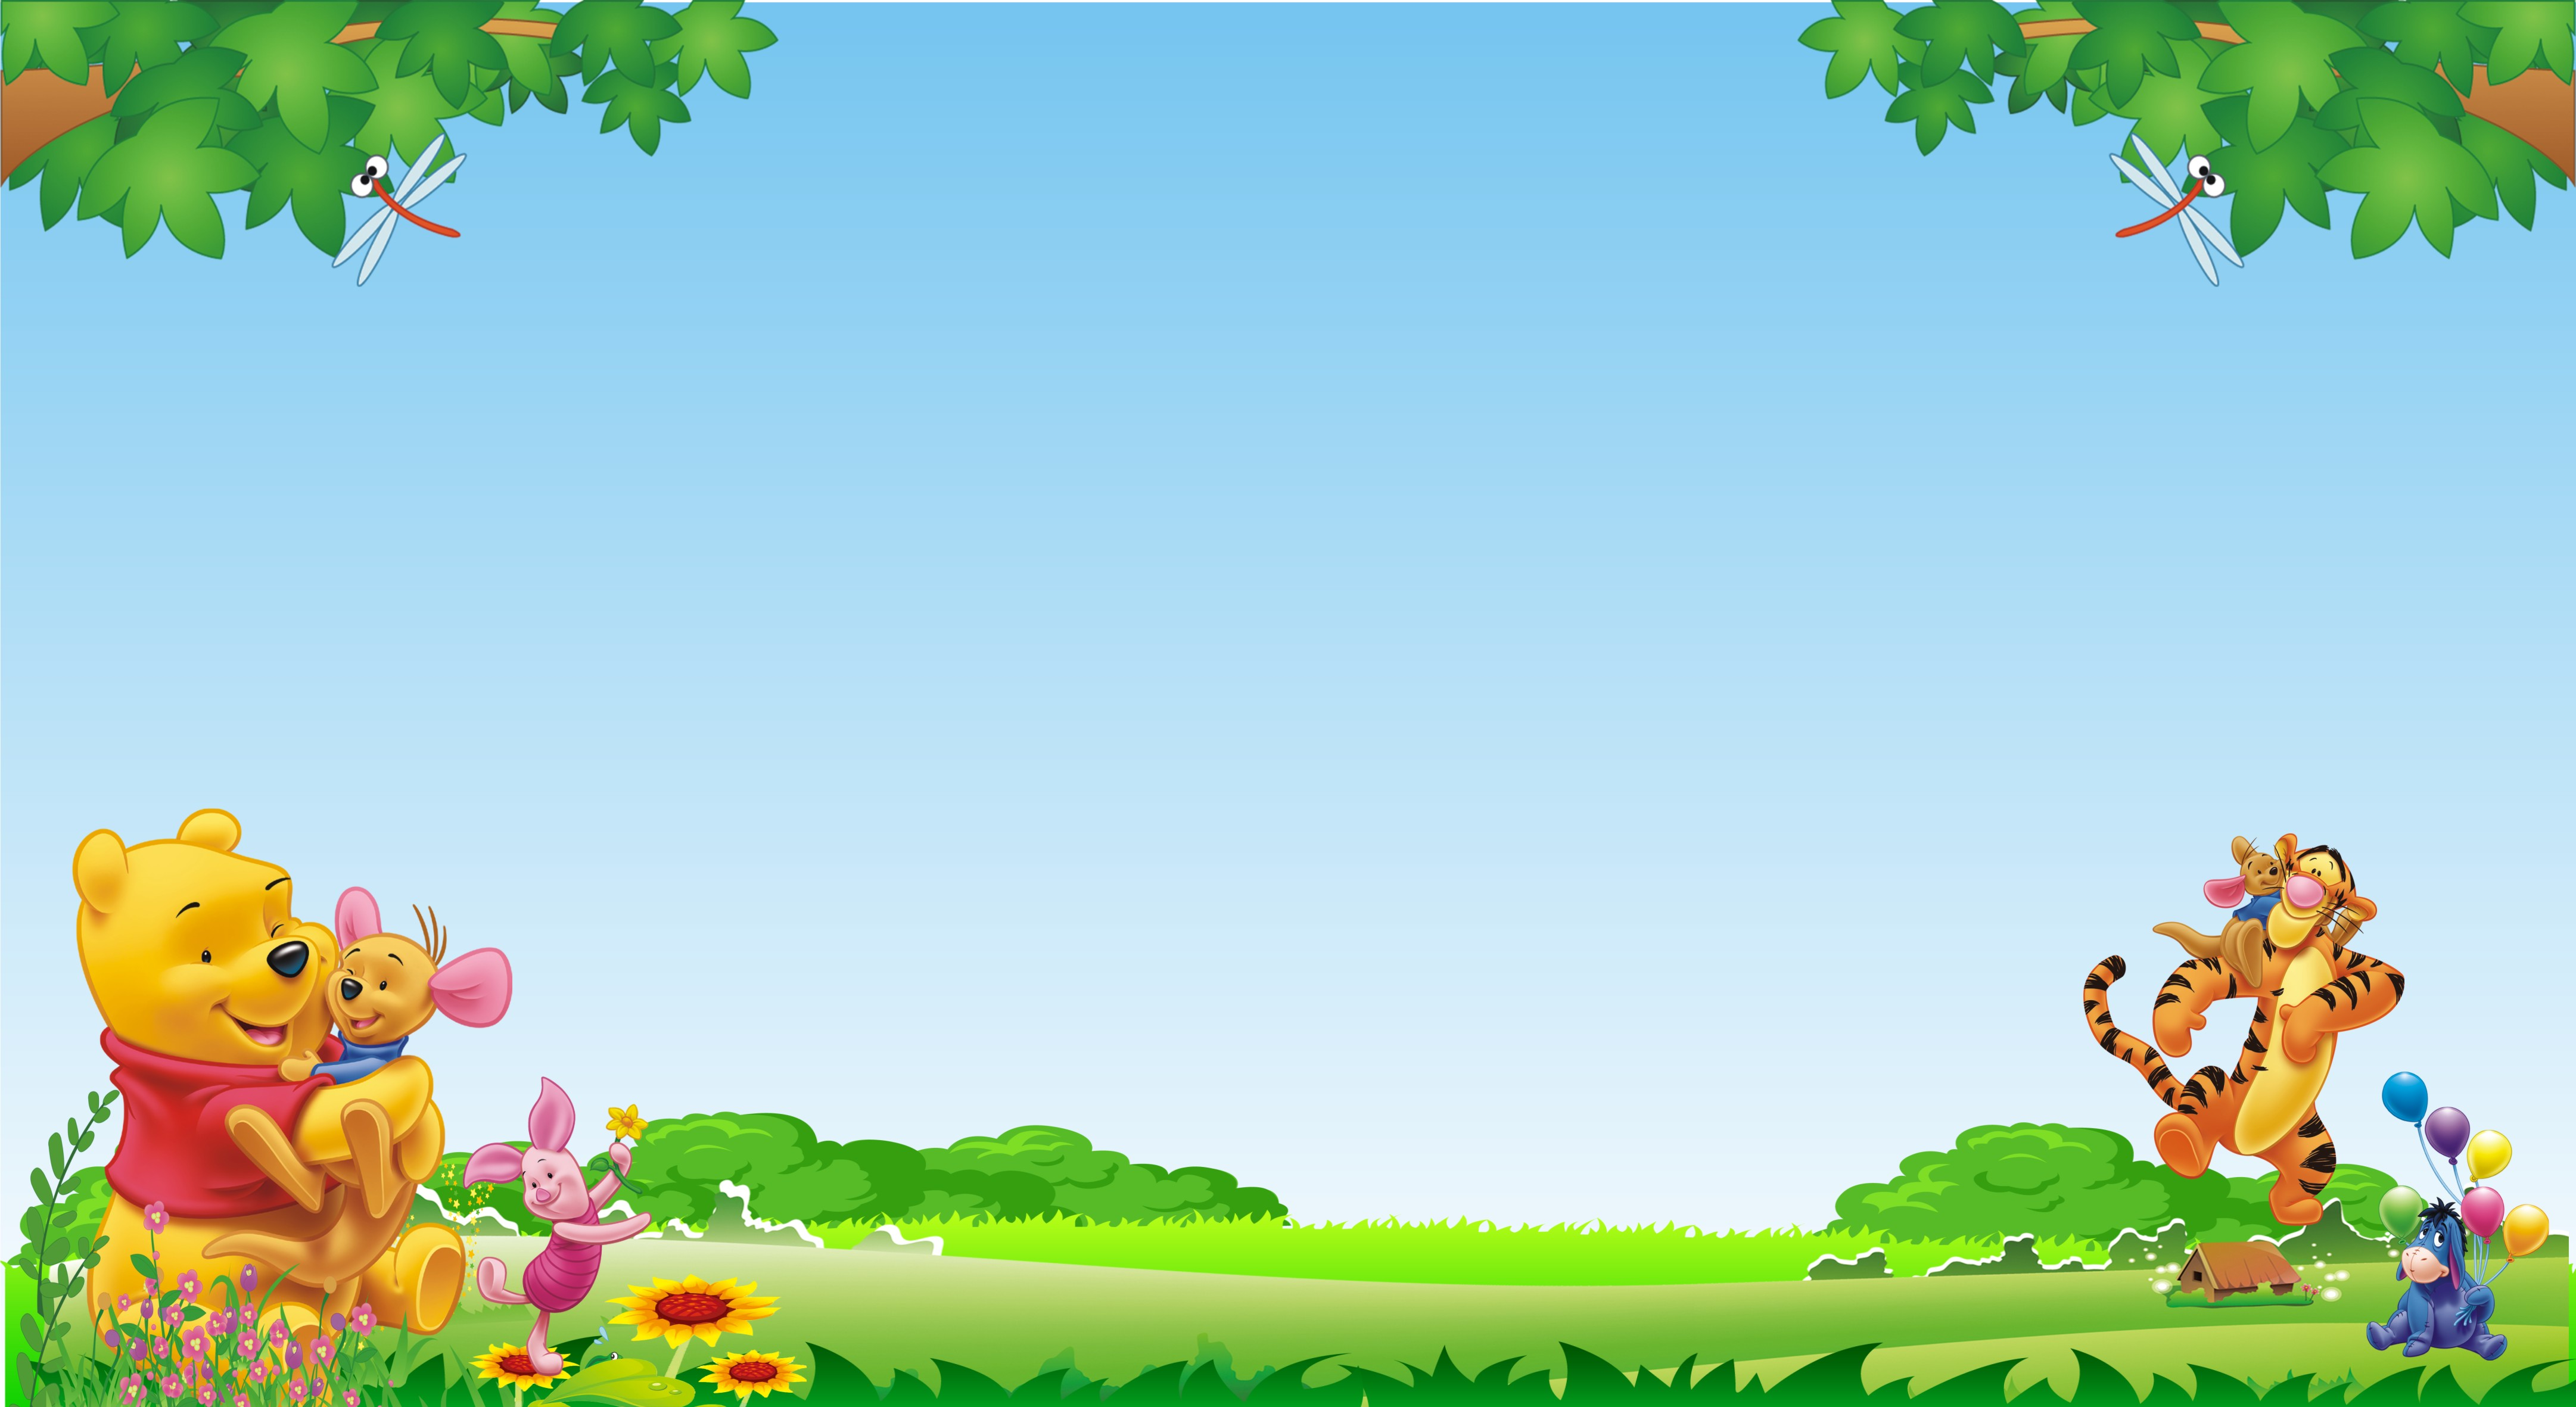 childrens day poster background template daquan  lawn  green  forest background image for free